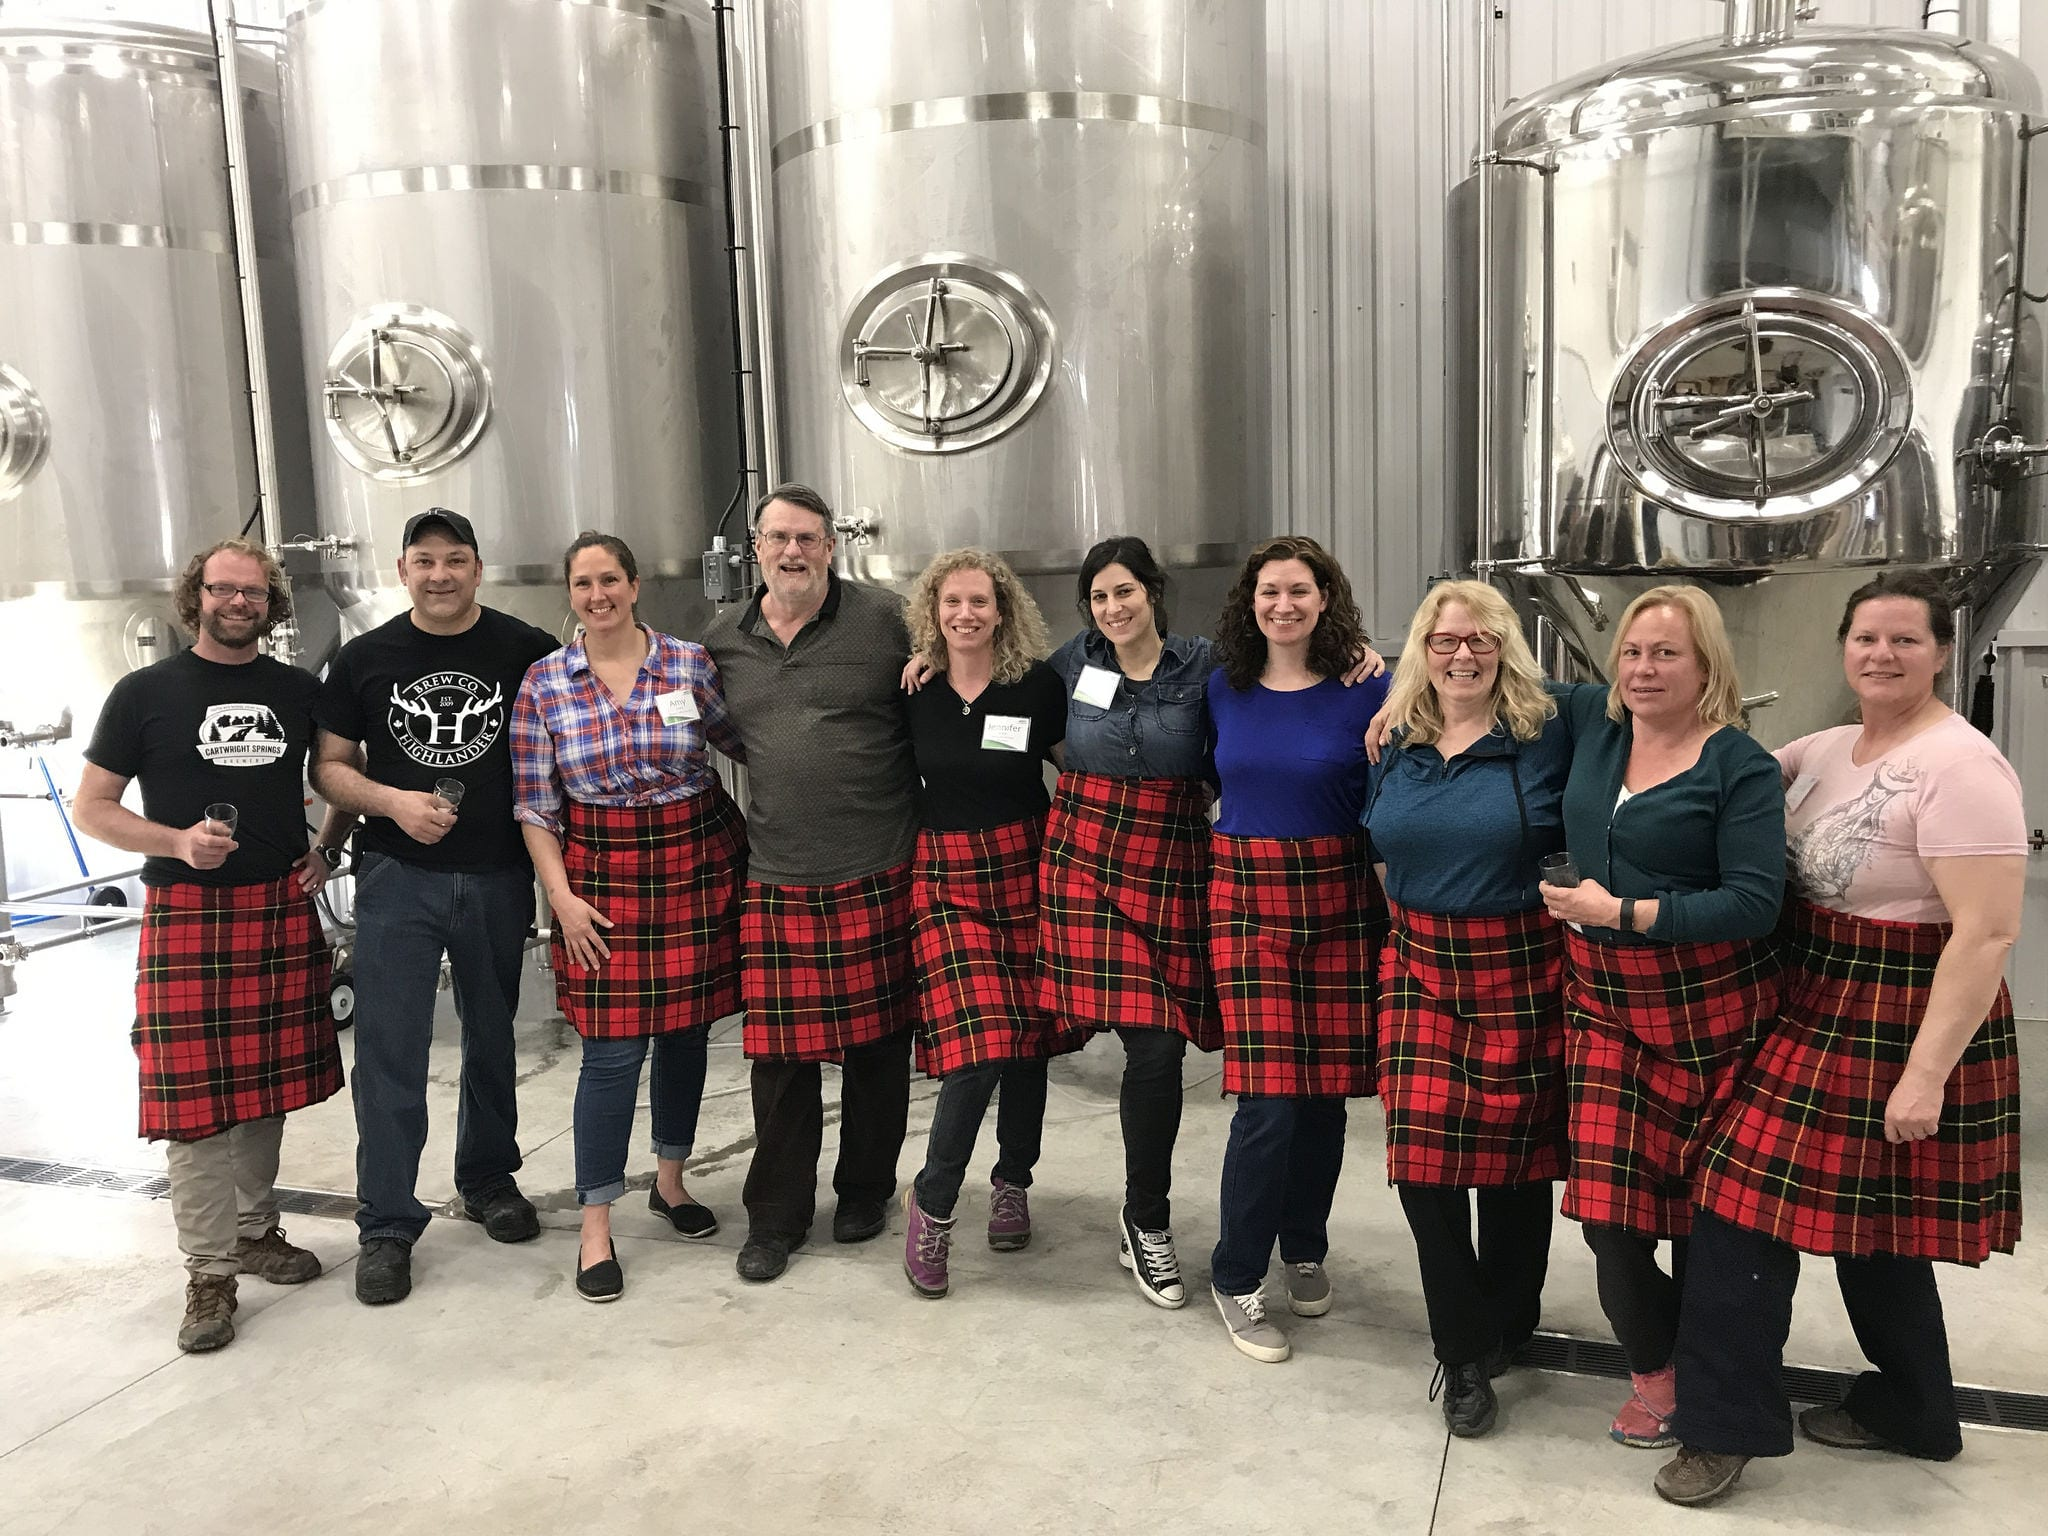 A community group touring Highland Brewery